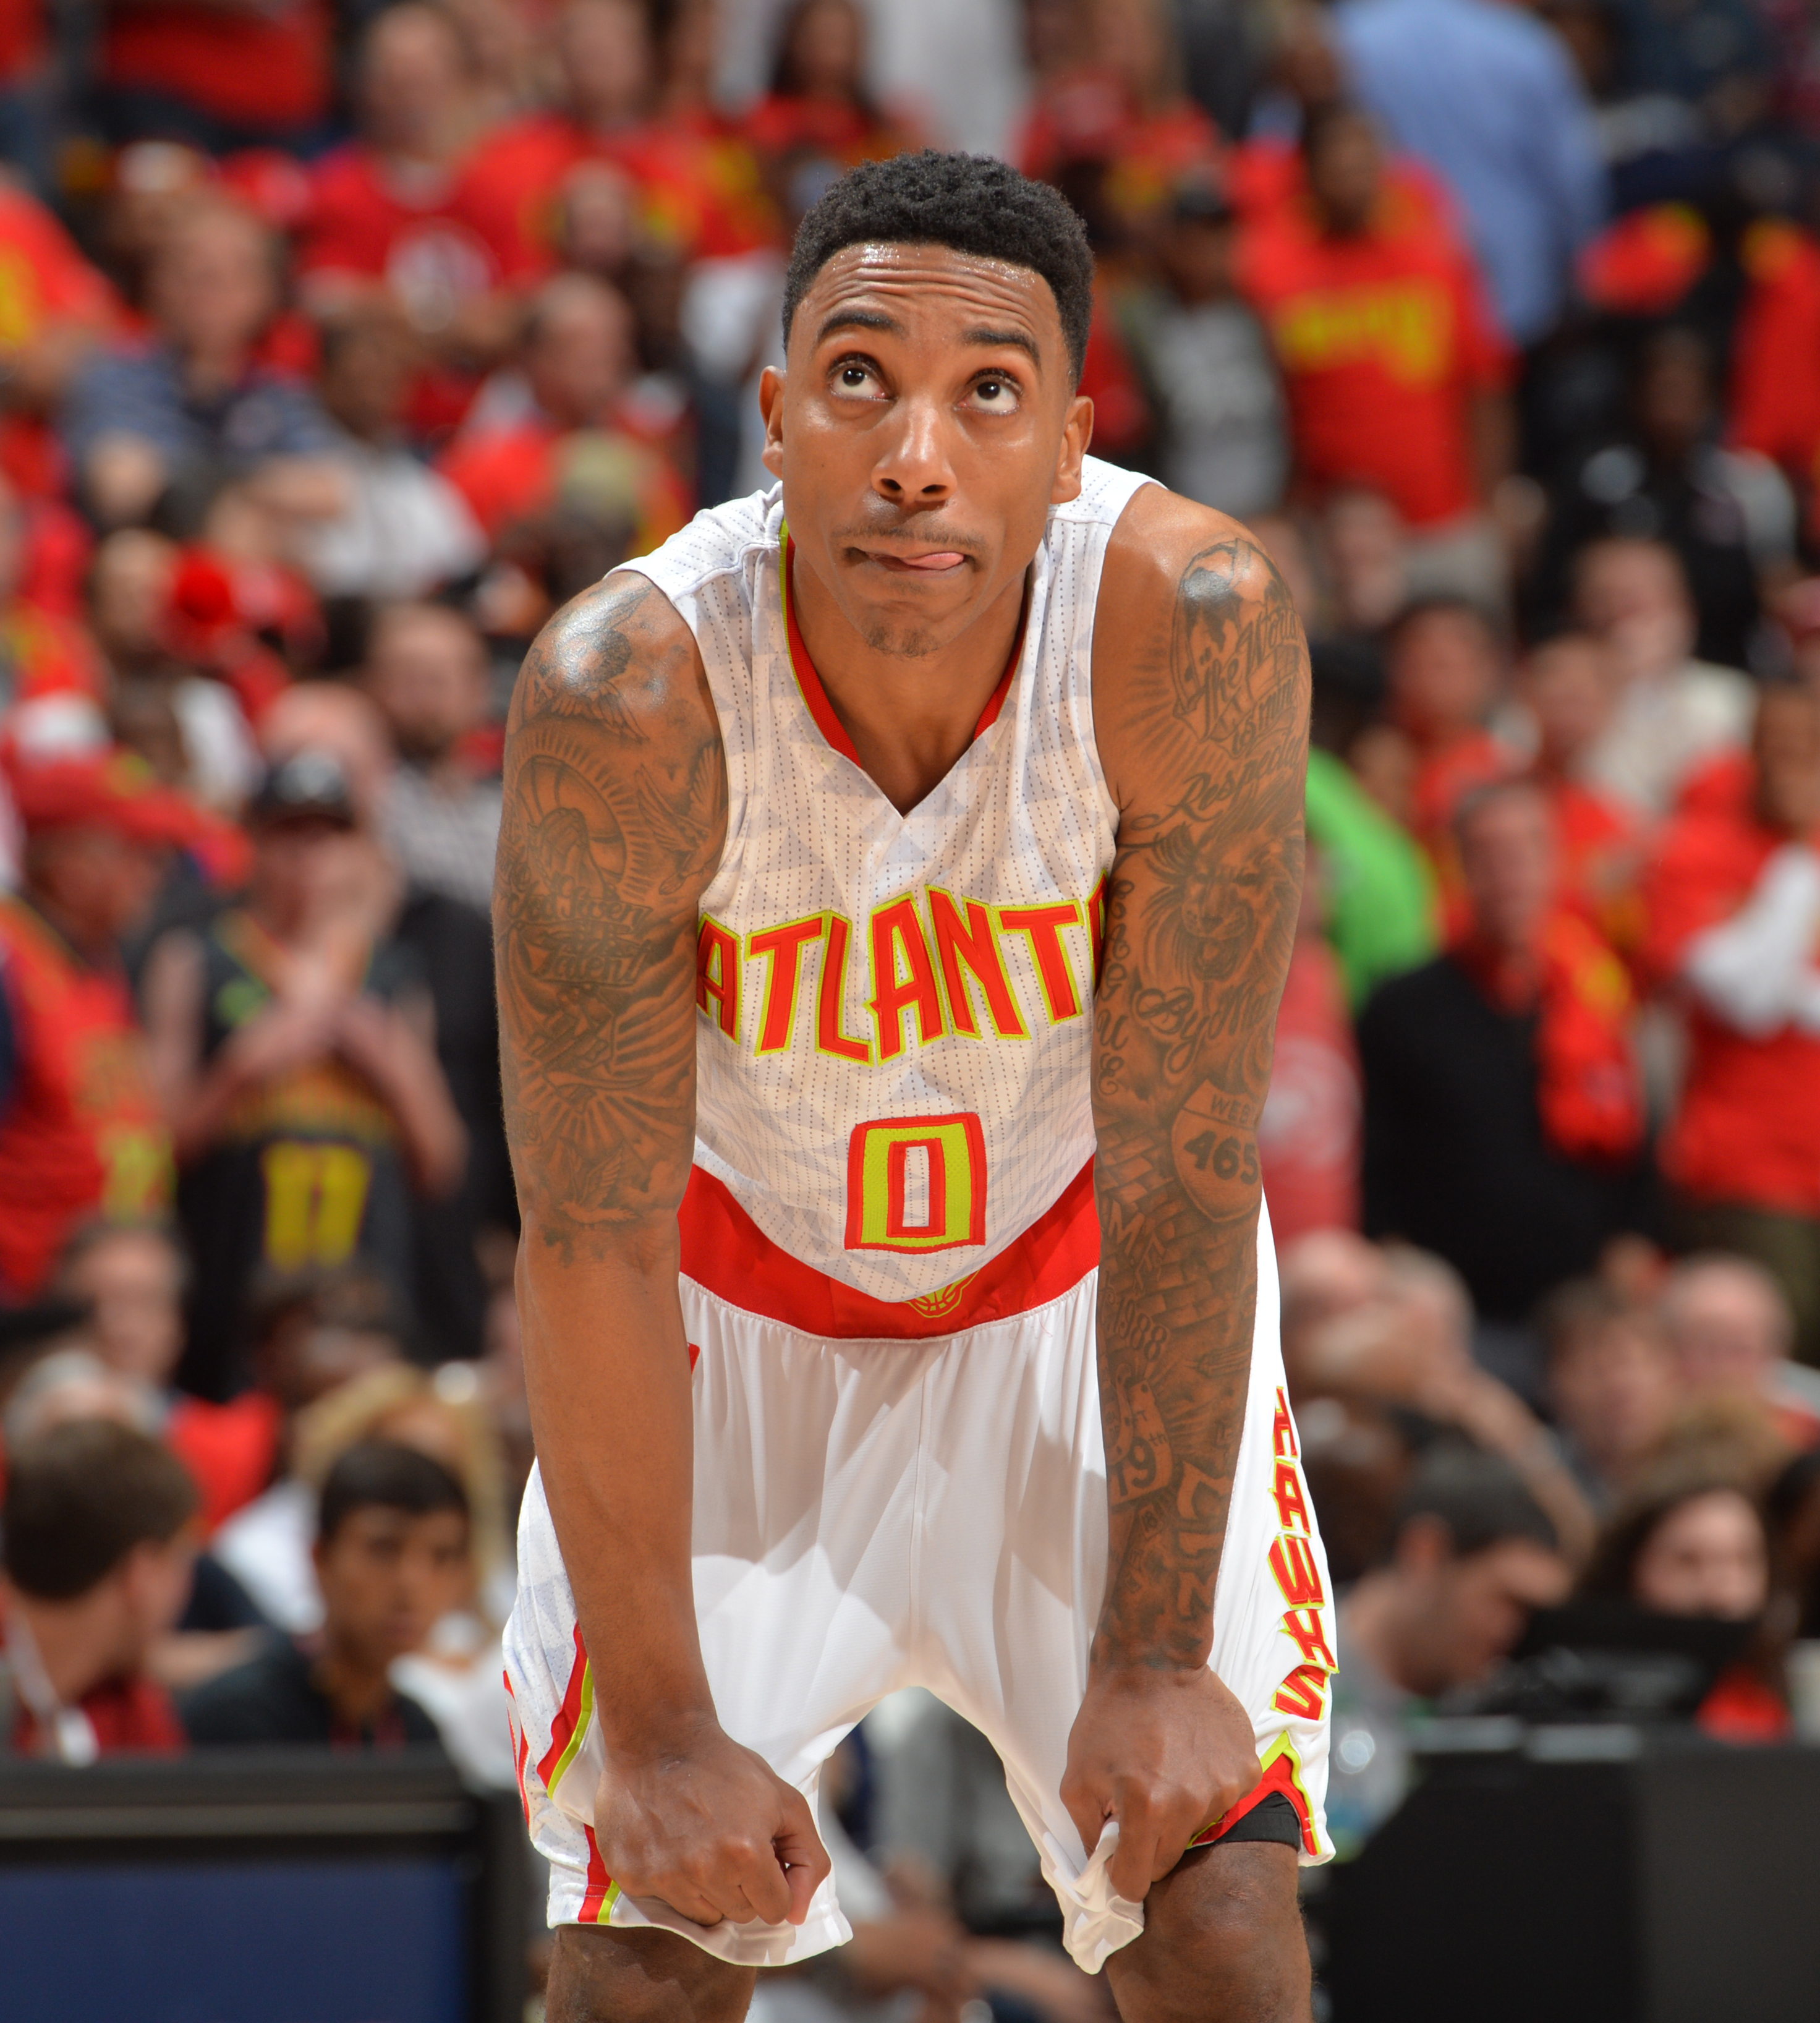 ATLANTA,GA - MAY 6 :  Jeff Teague #0 of the Atlanta Hawks looks on against the Cleveland Cavaliers during the Eastern Conference Semifinals Game Three on May 6, 2016 at The Philips Arena in Atlanta Georgia (Photo by Jesse D. Garrabrant/NBAE via Getty Imag